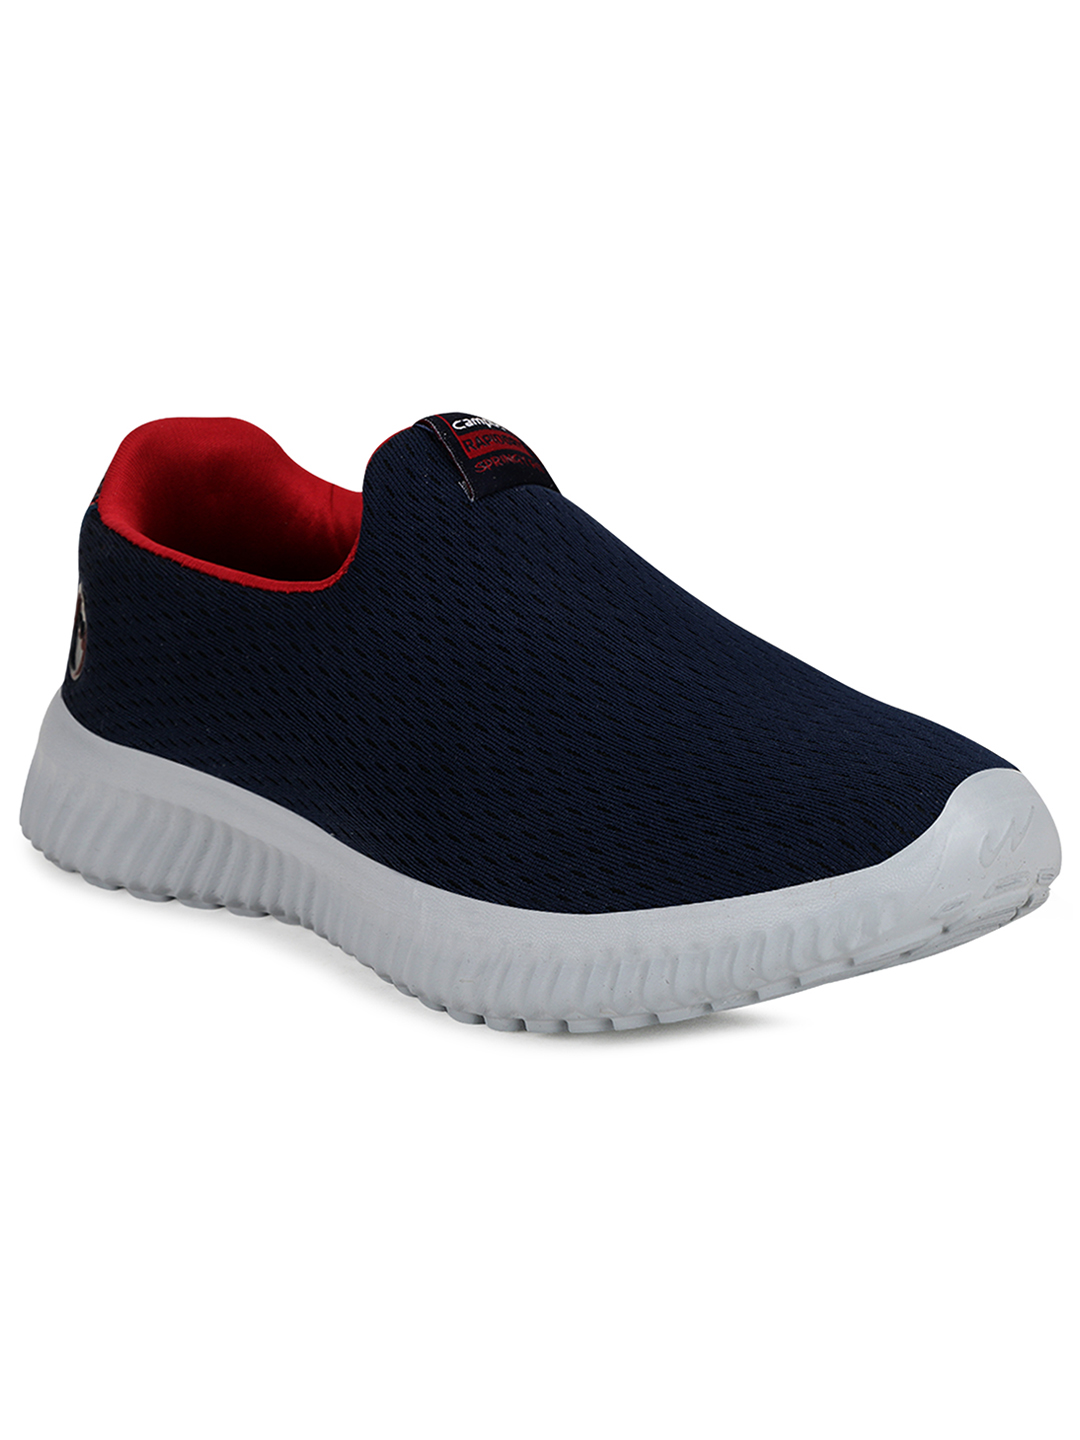 Campus Shoes   Blue Oxyfit Running Shoes